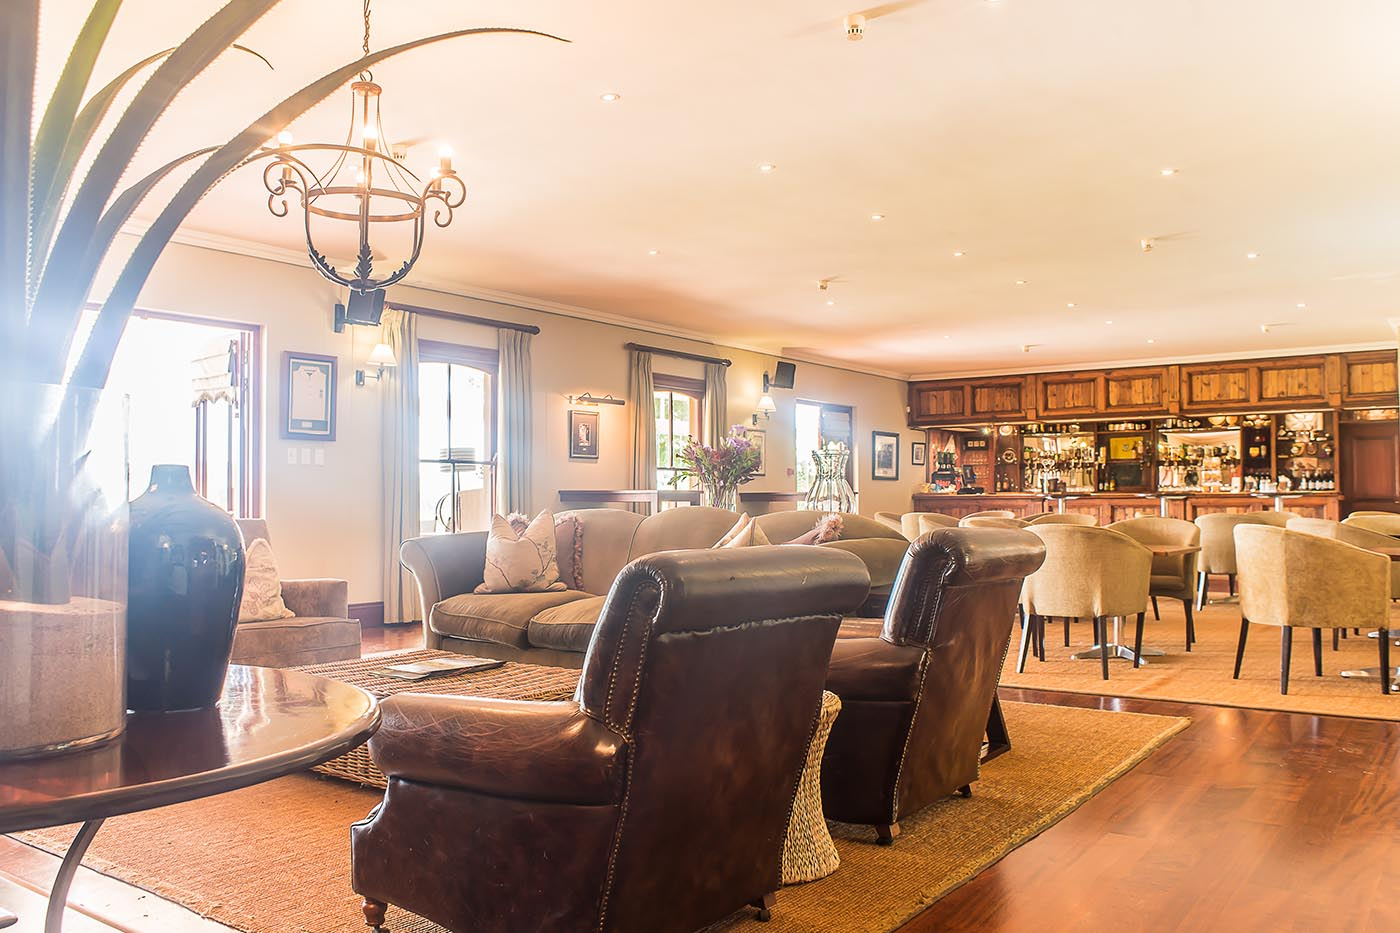 gowrie-club-house-gallery-golf-lodge-property-midlands-drakensberg-Nottingham-Road